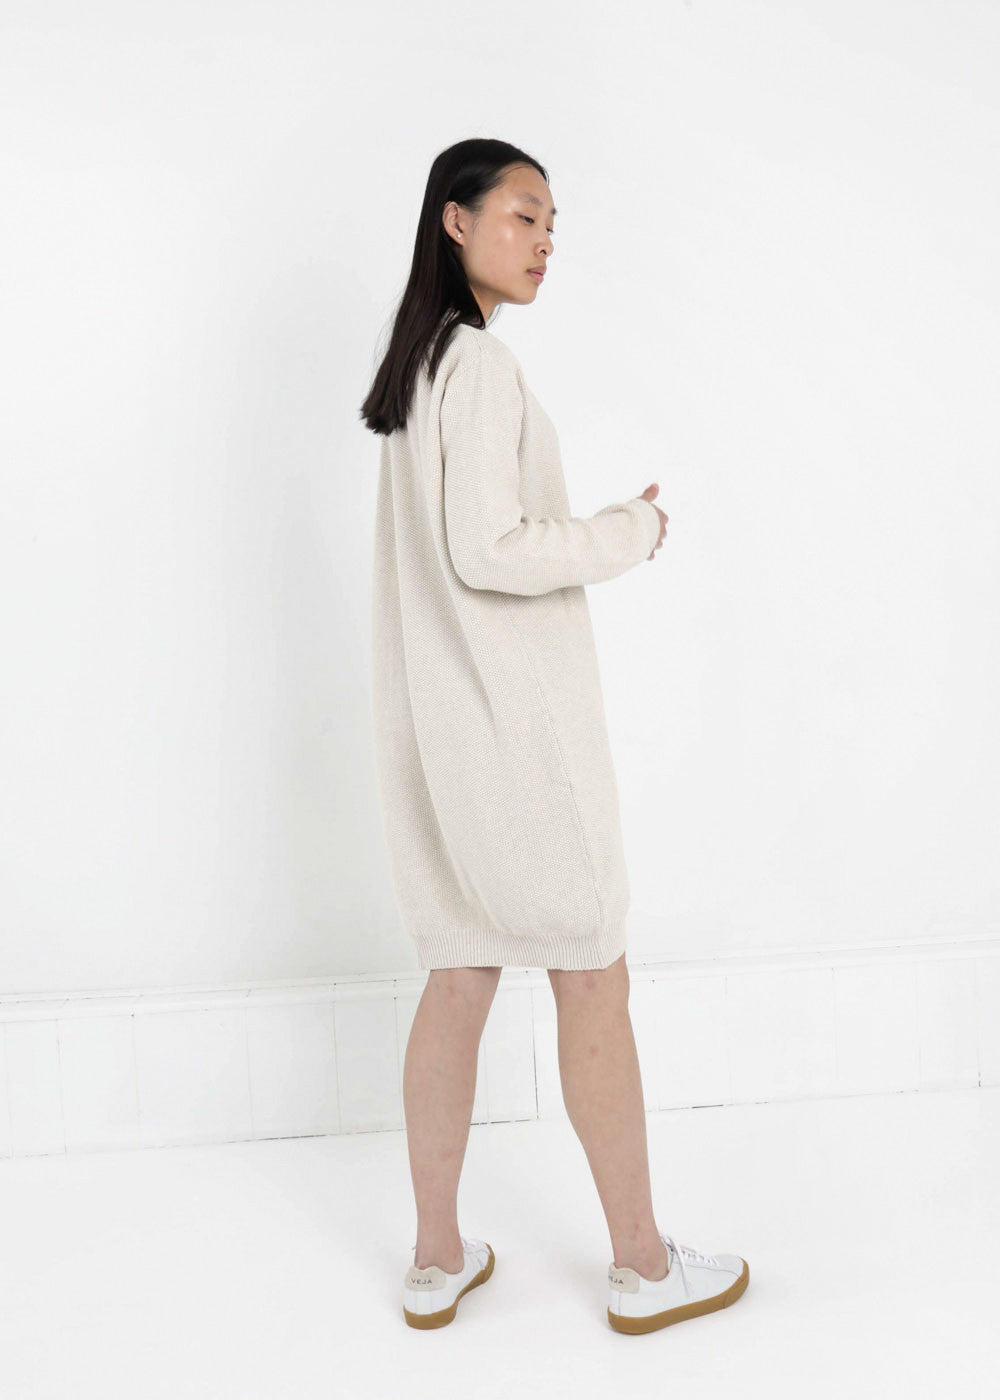 Kowtow See You There Dress - New Classics Studios